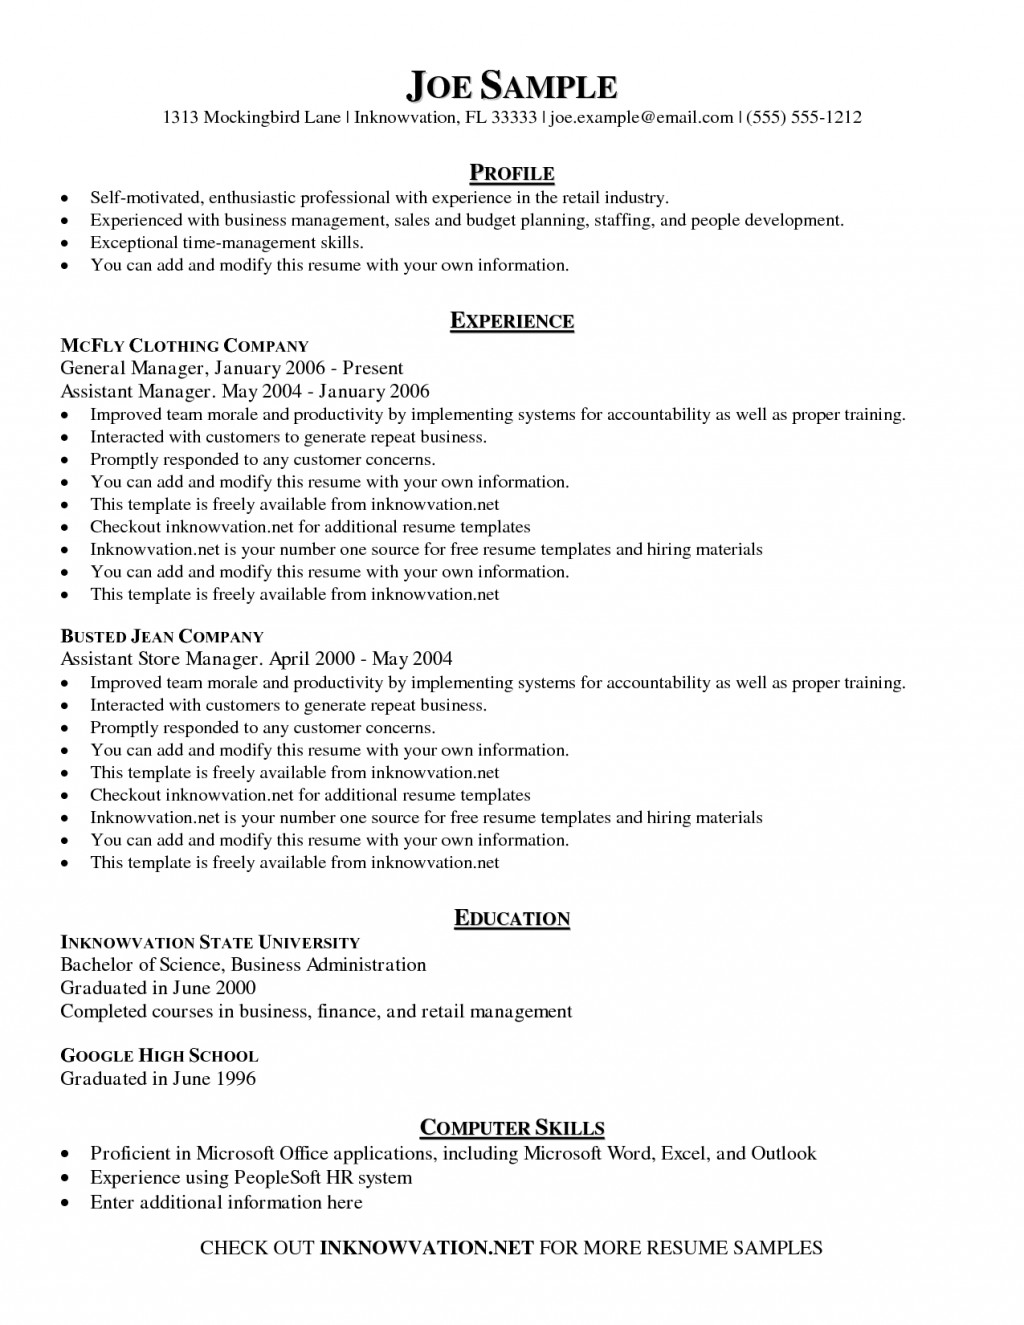 019 Asa Essay Format Sample Resumes Templates Asafonggecco How To Write Resume Template Remarkable Reference Example Citation Website For Journal Article Large